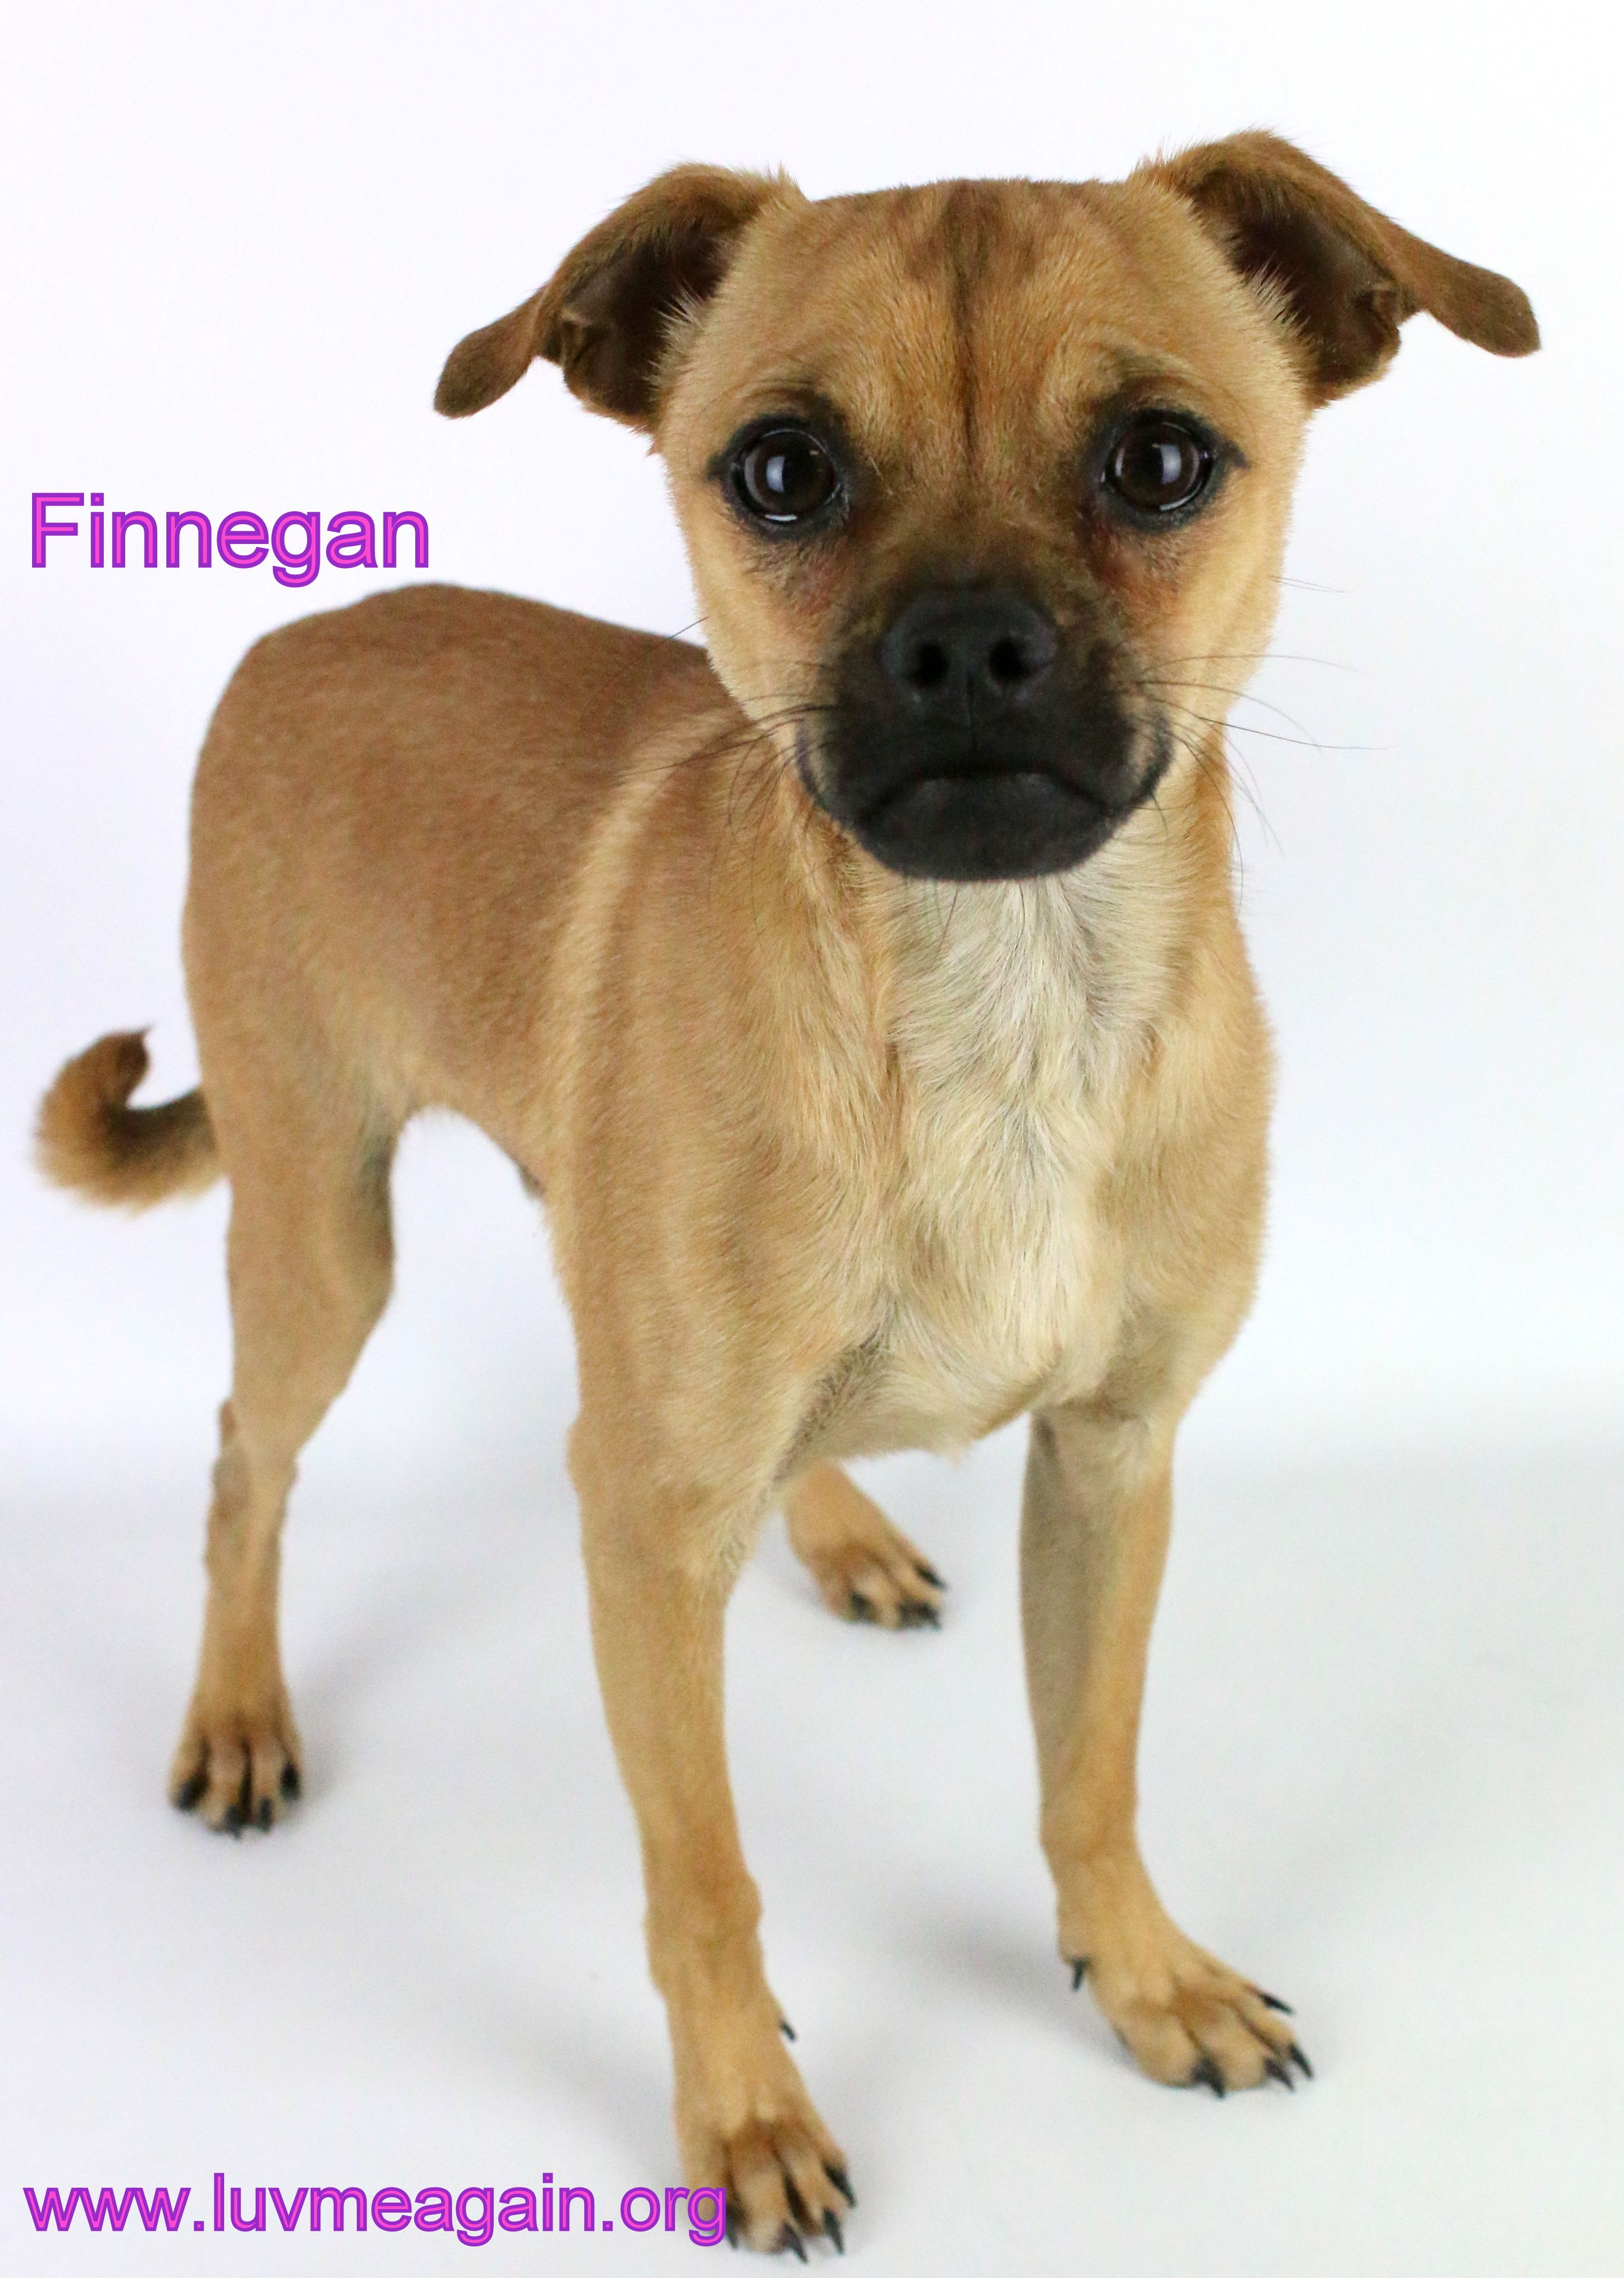 Chug Dog For Adoption In Bloomington Mn Adn 535230 On Puppyfinder Com Gender Male Age Young Chug Dog Dog Adoption Dogs